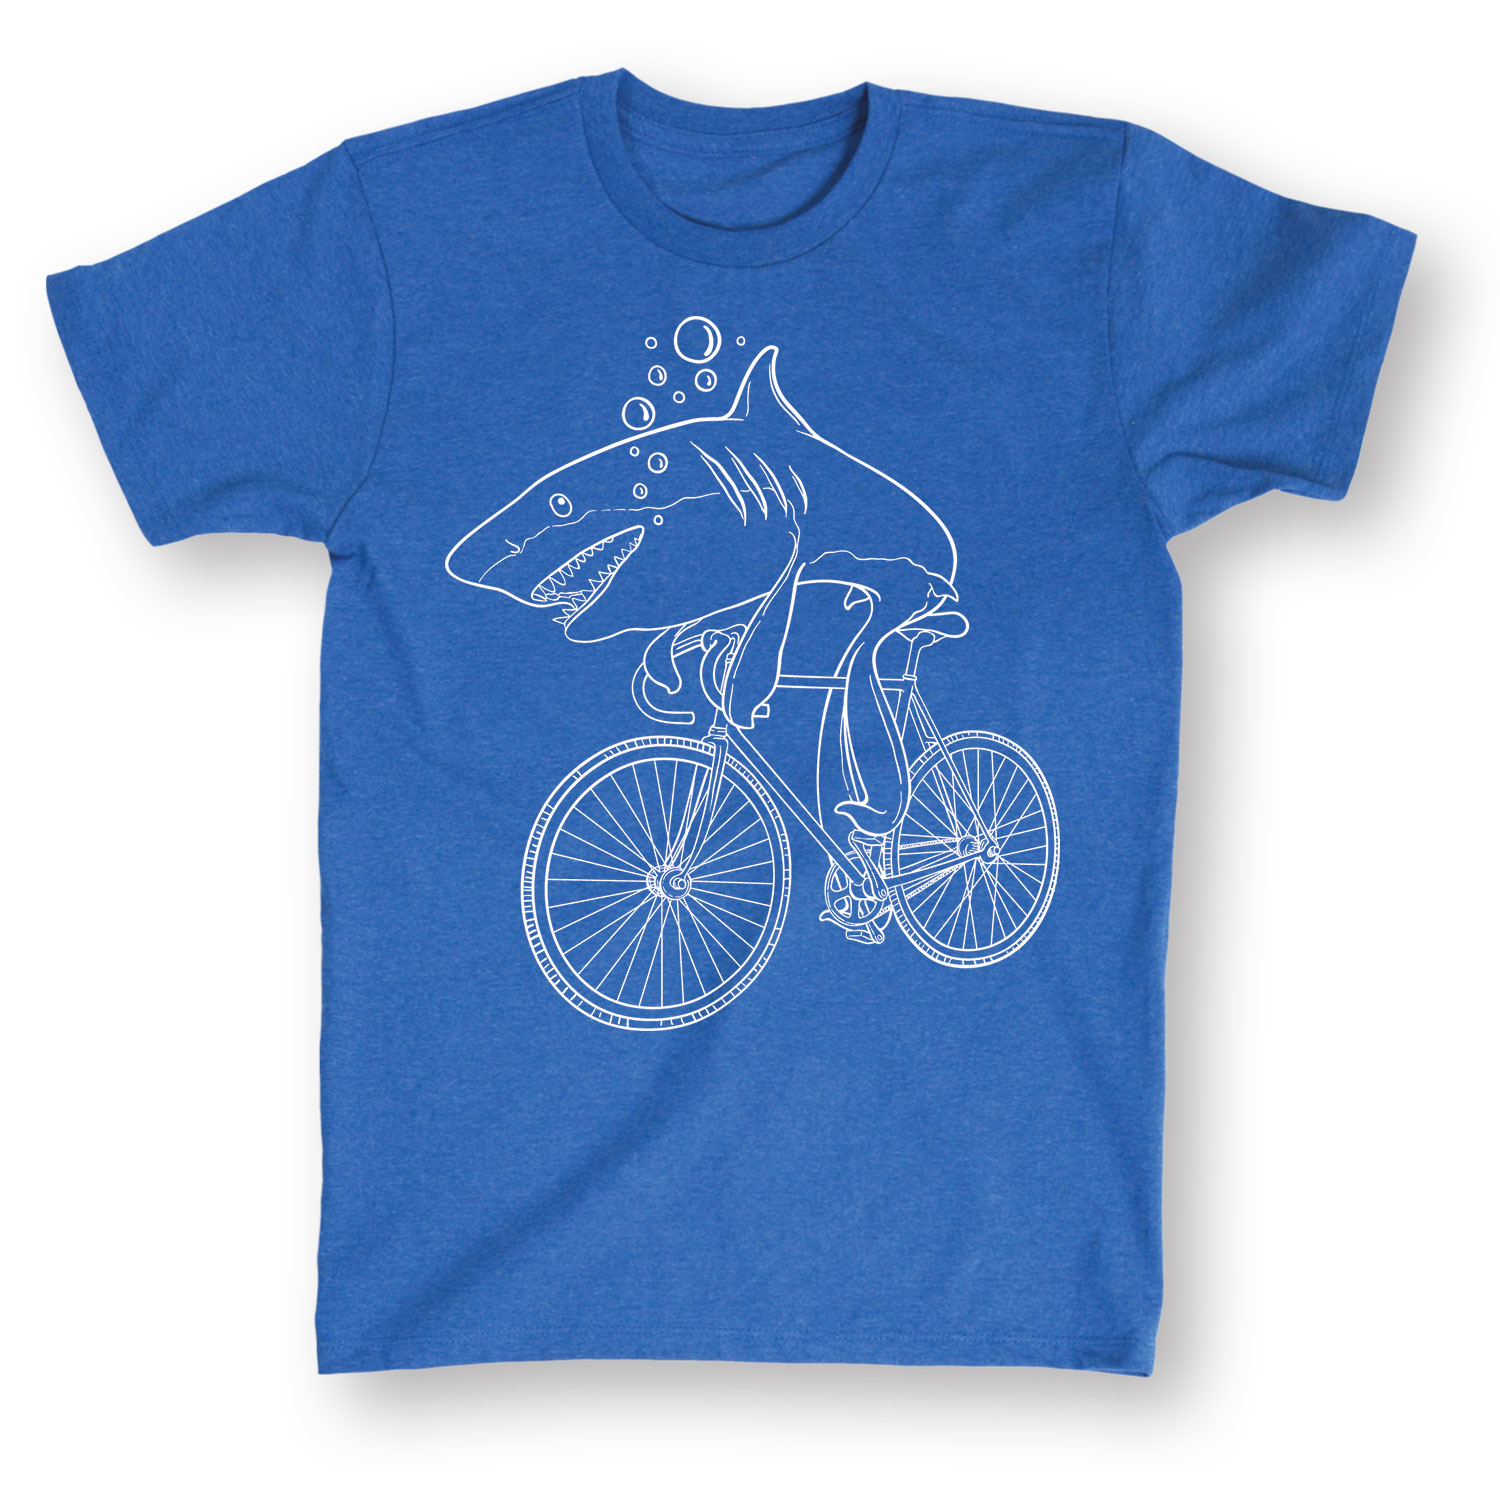 Shark Riding A Bicycle White Outline Ocean Blue T-Shirt For Men